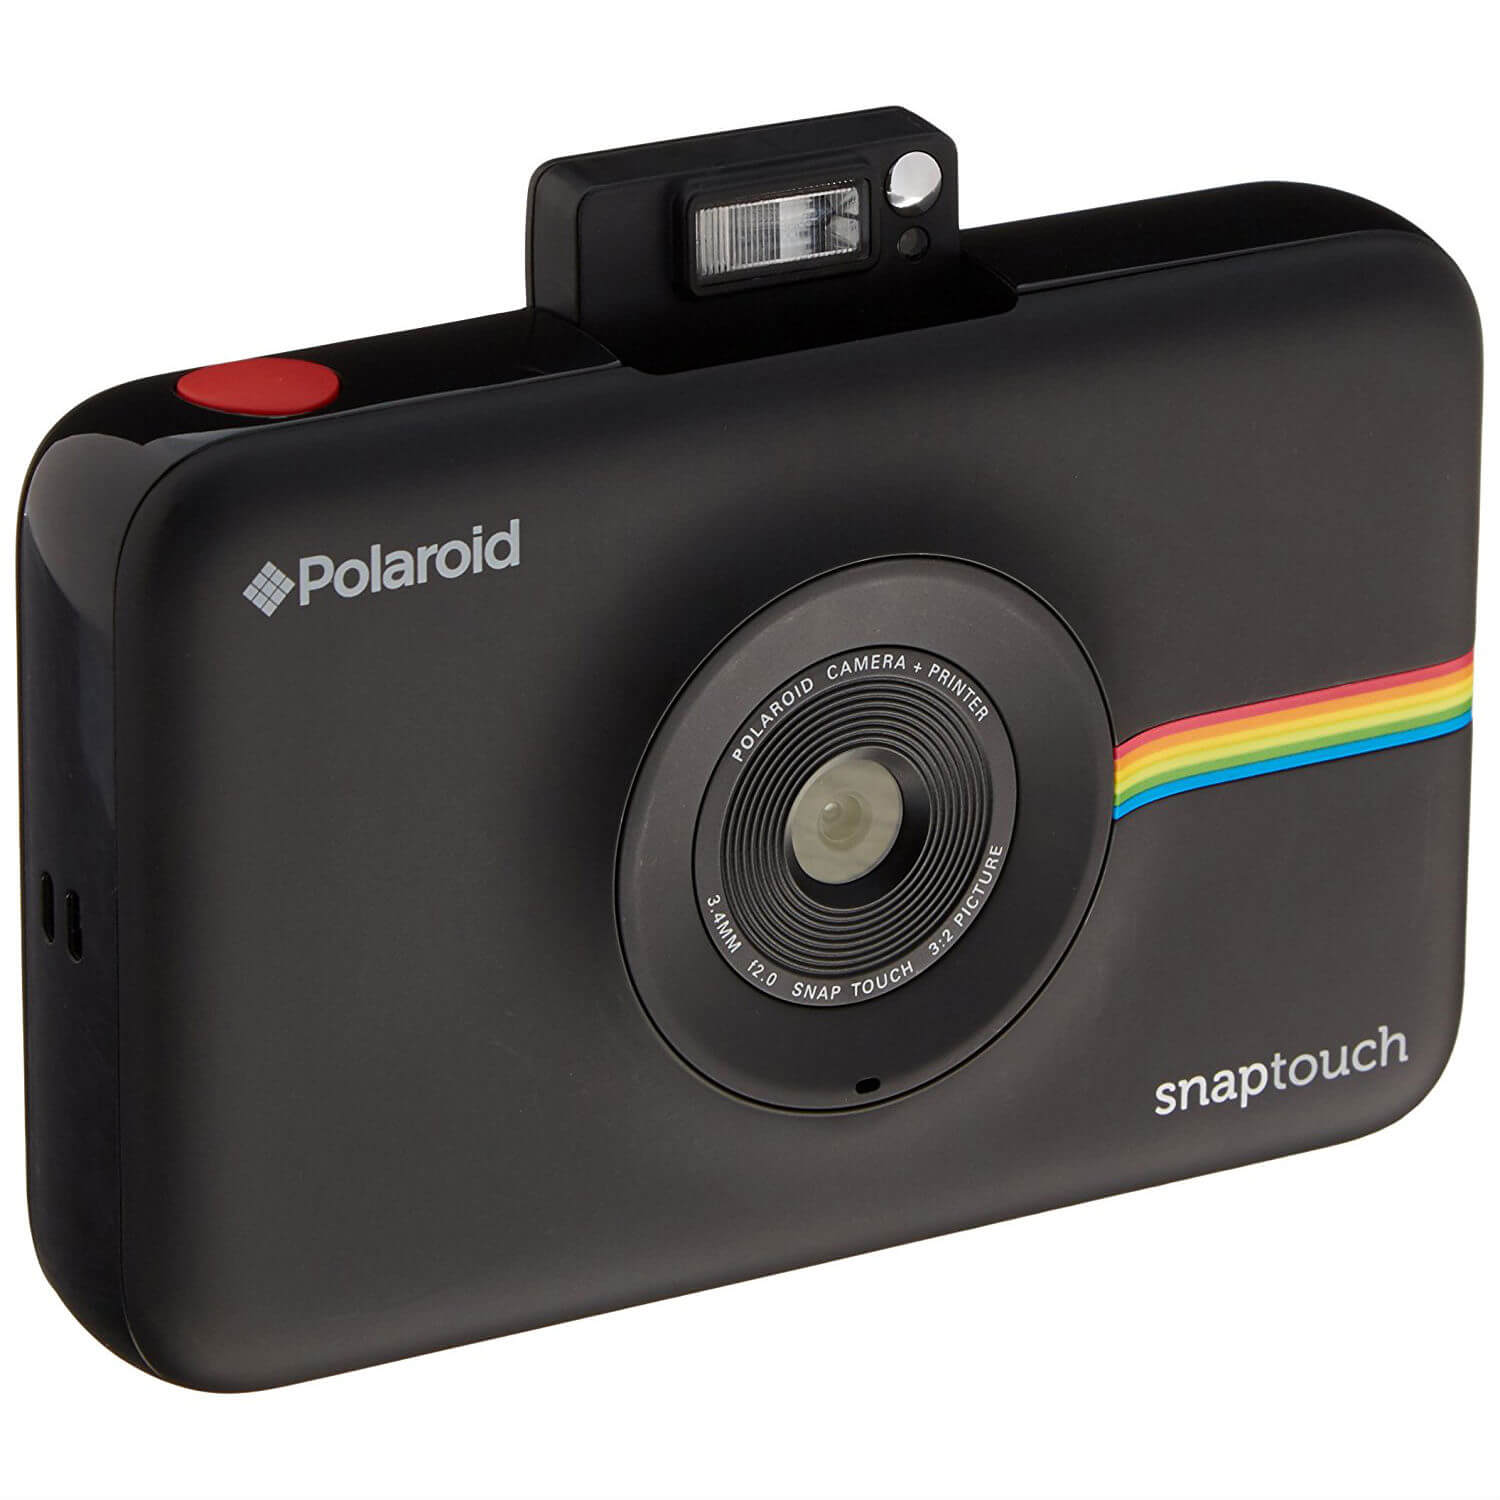 Polaroid Snap Touch Instant Print Digital Camera Black